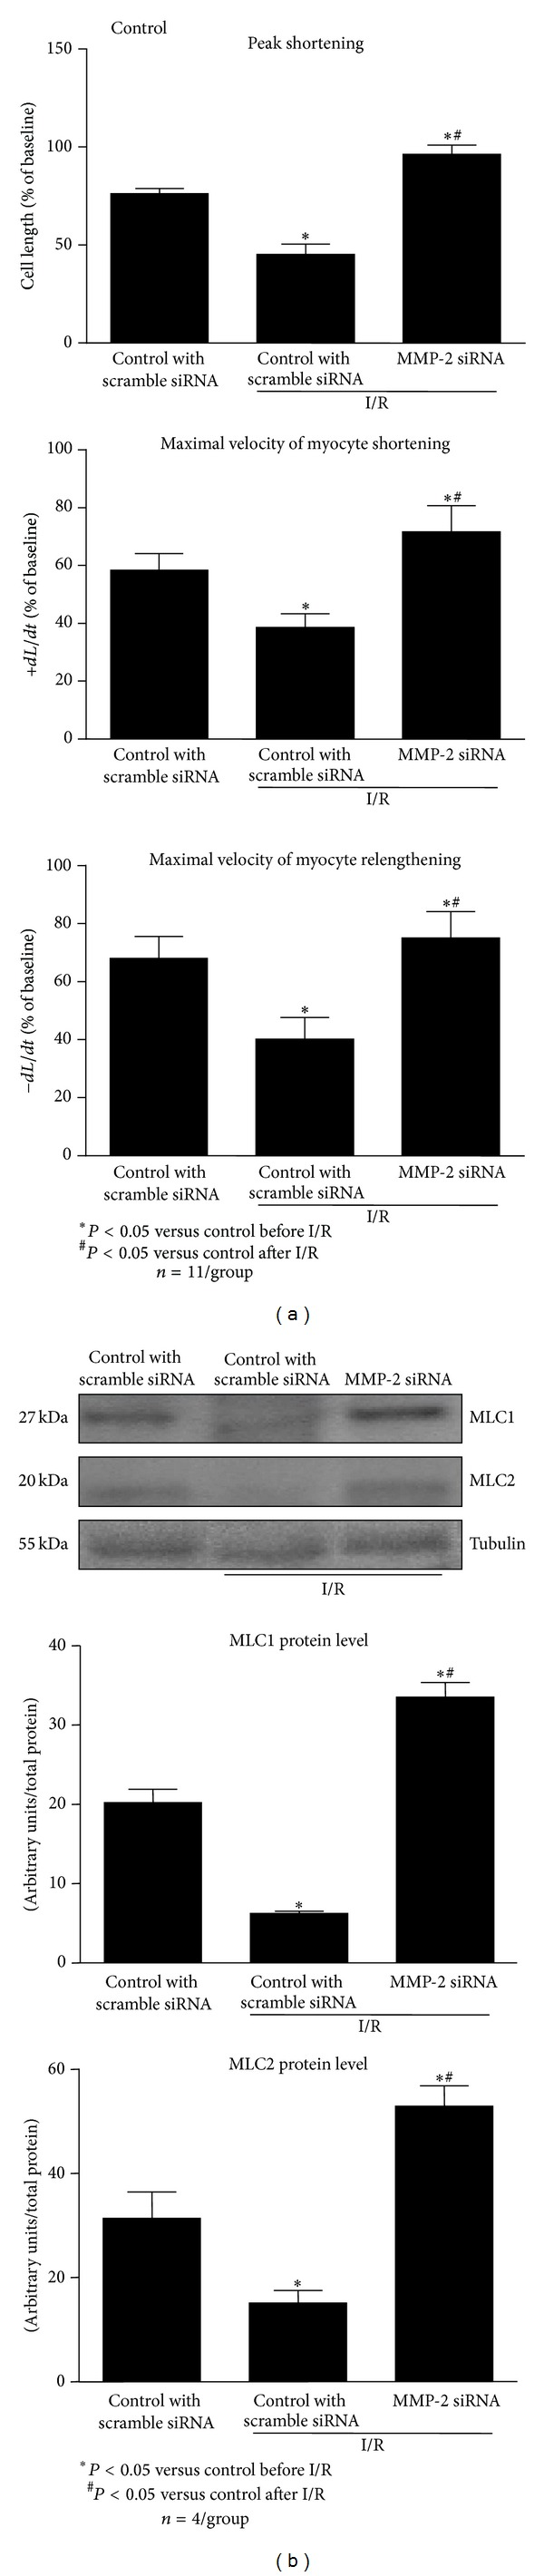 Effect of MMP-2 siRNA transfection on cardiomyocyte contractility (a) and MLC1 and MLC2 in cardiomyocytes subjected to I/R. As a protein loading control the tubulin level was measured. Control cells were transfected with scrambled siRNA. n = 11 per group for contractility measurement and n = 4 for measurement of protein levels. * P